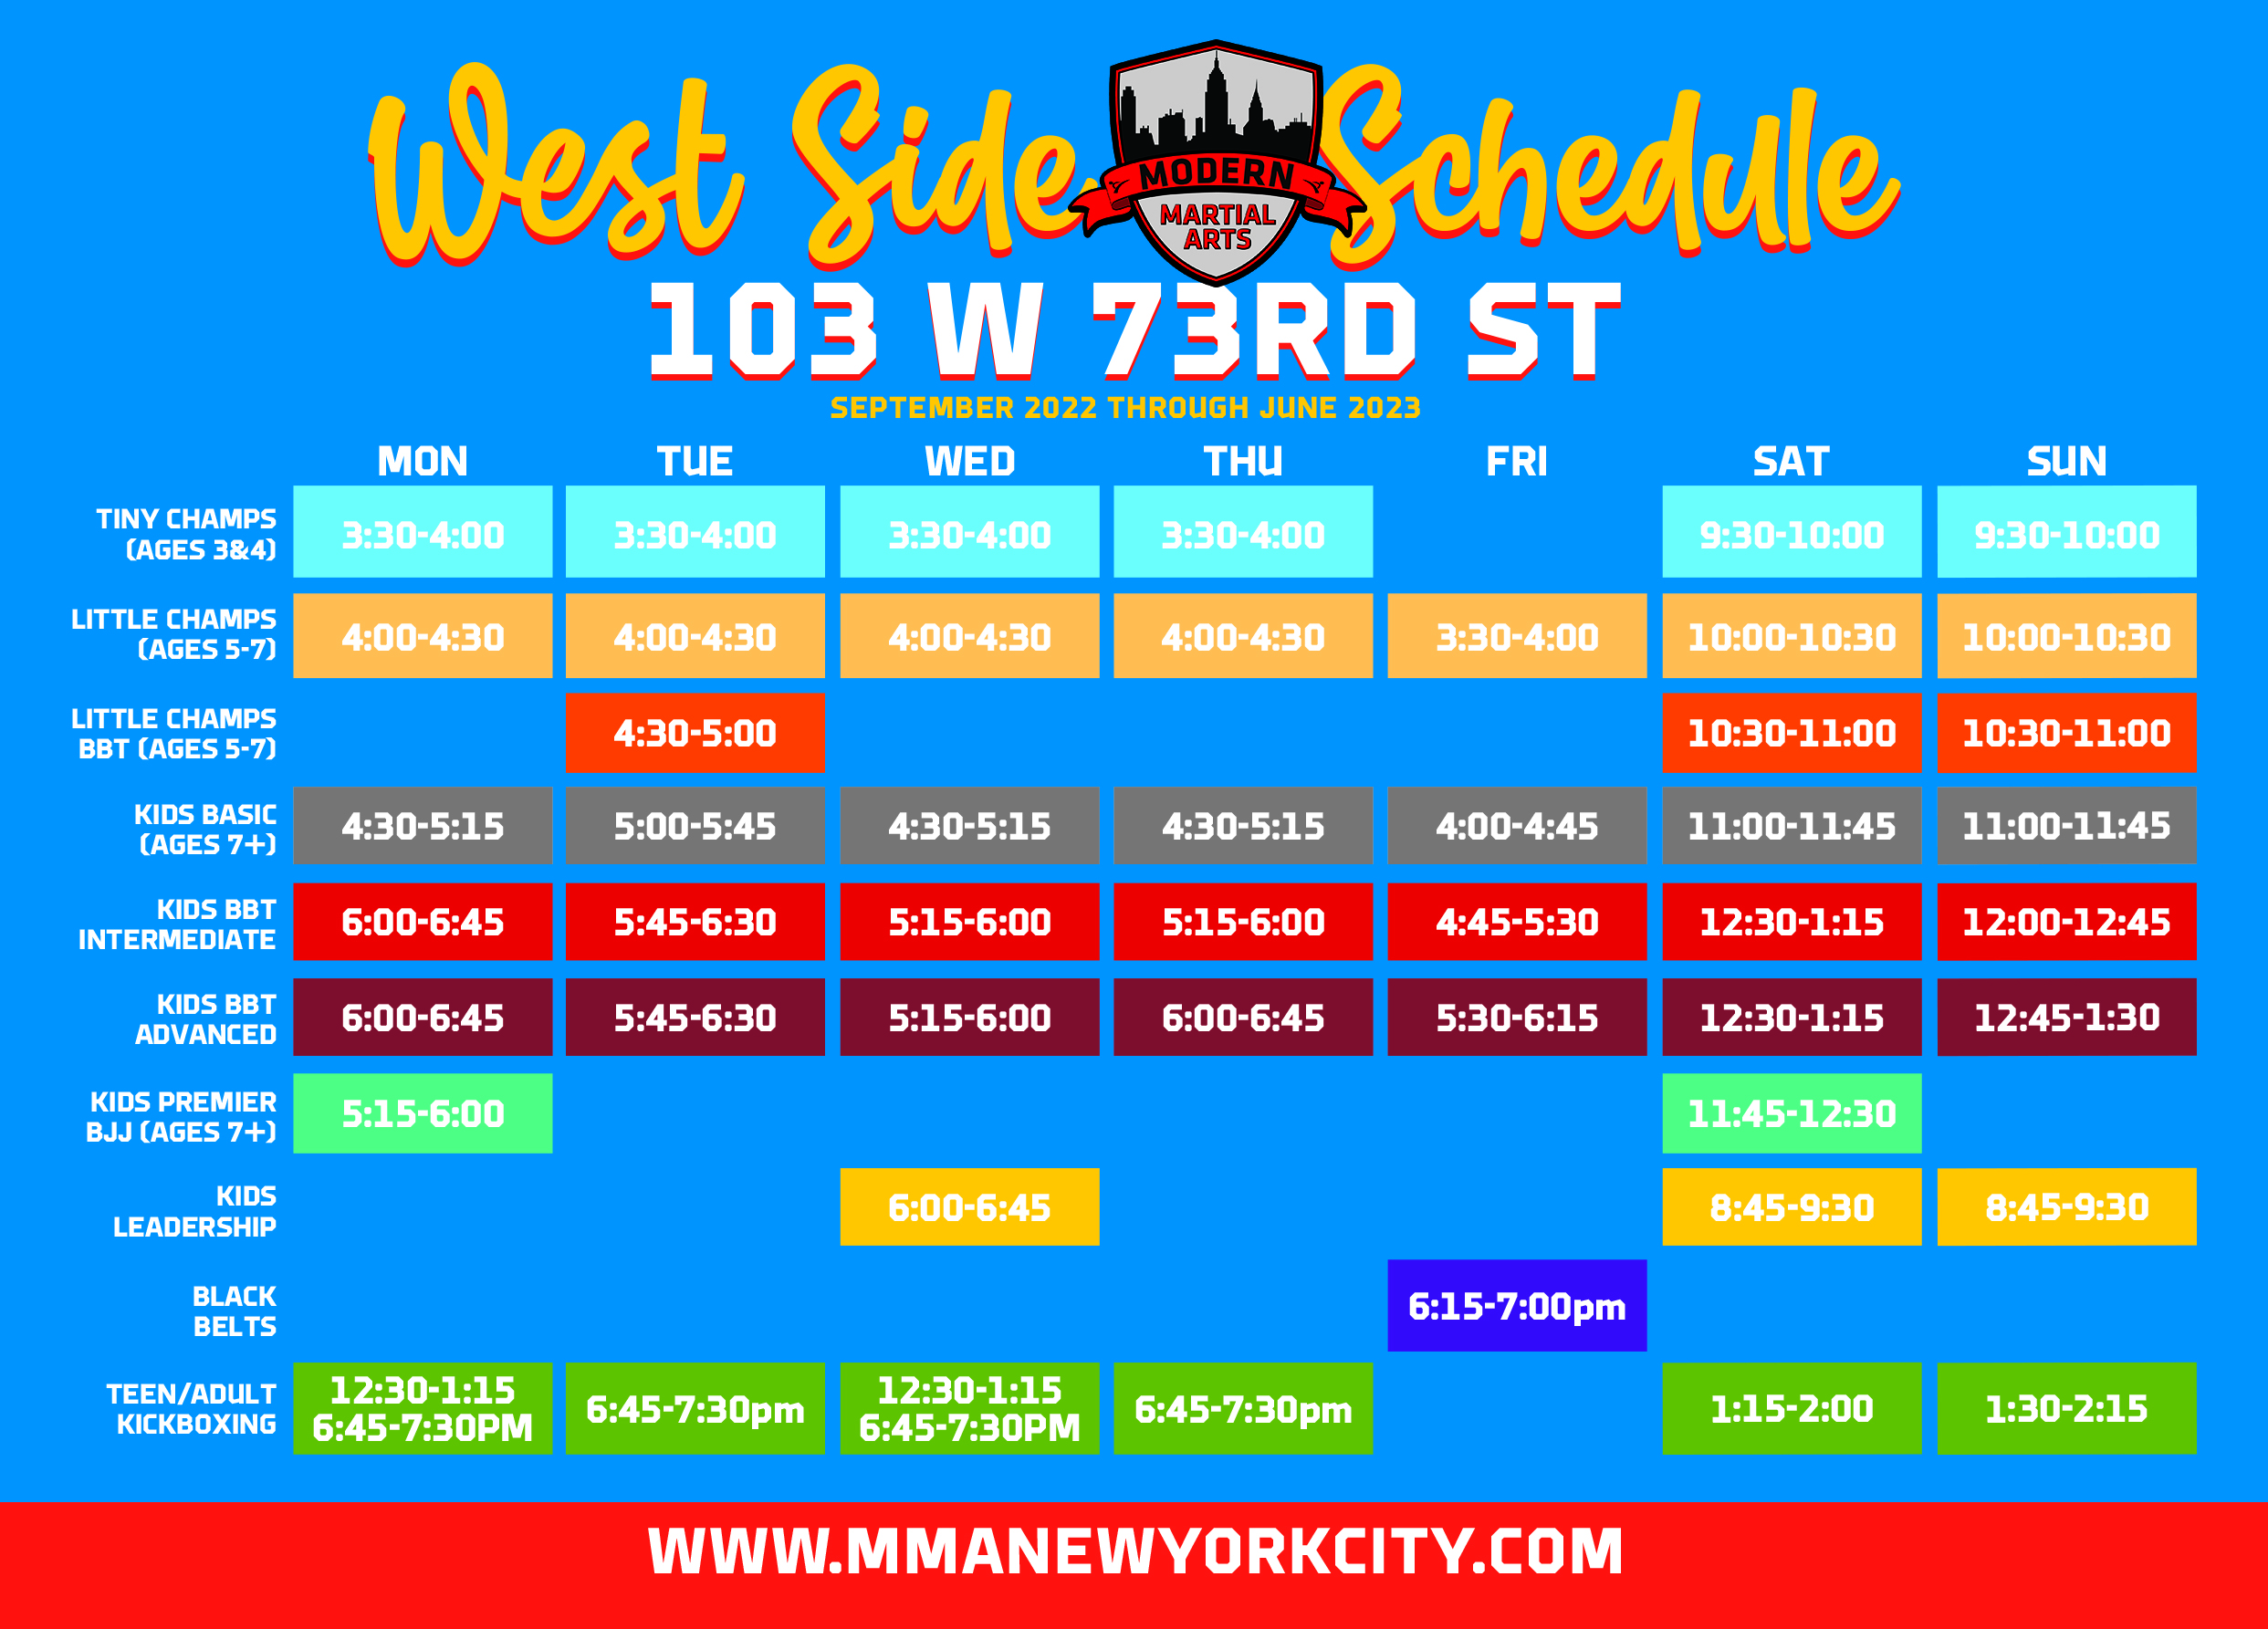 Upper Westside Schedule